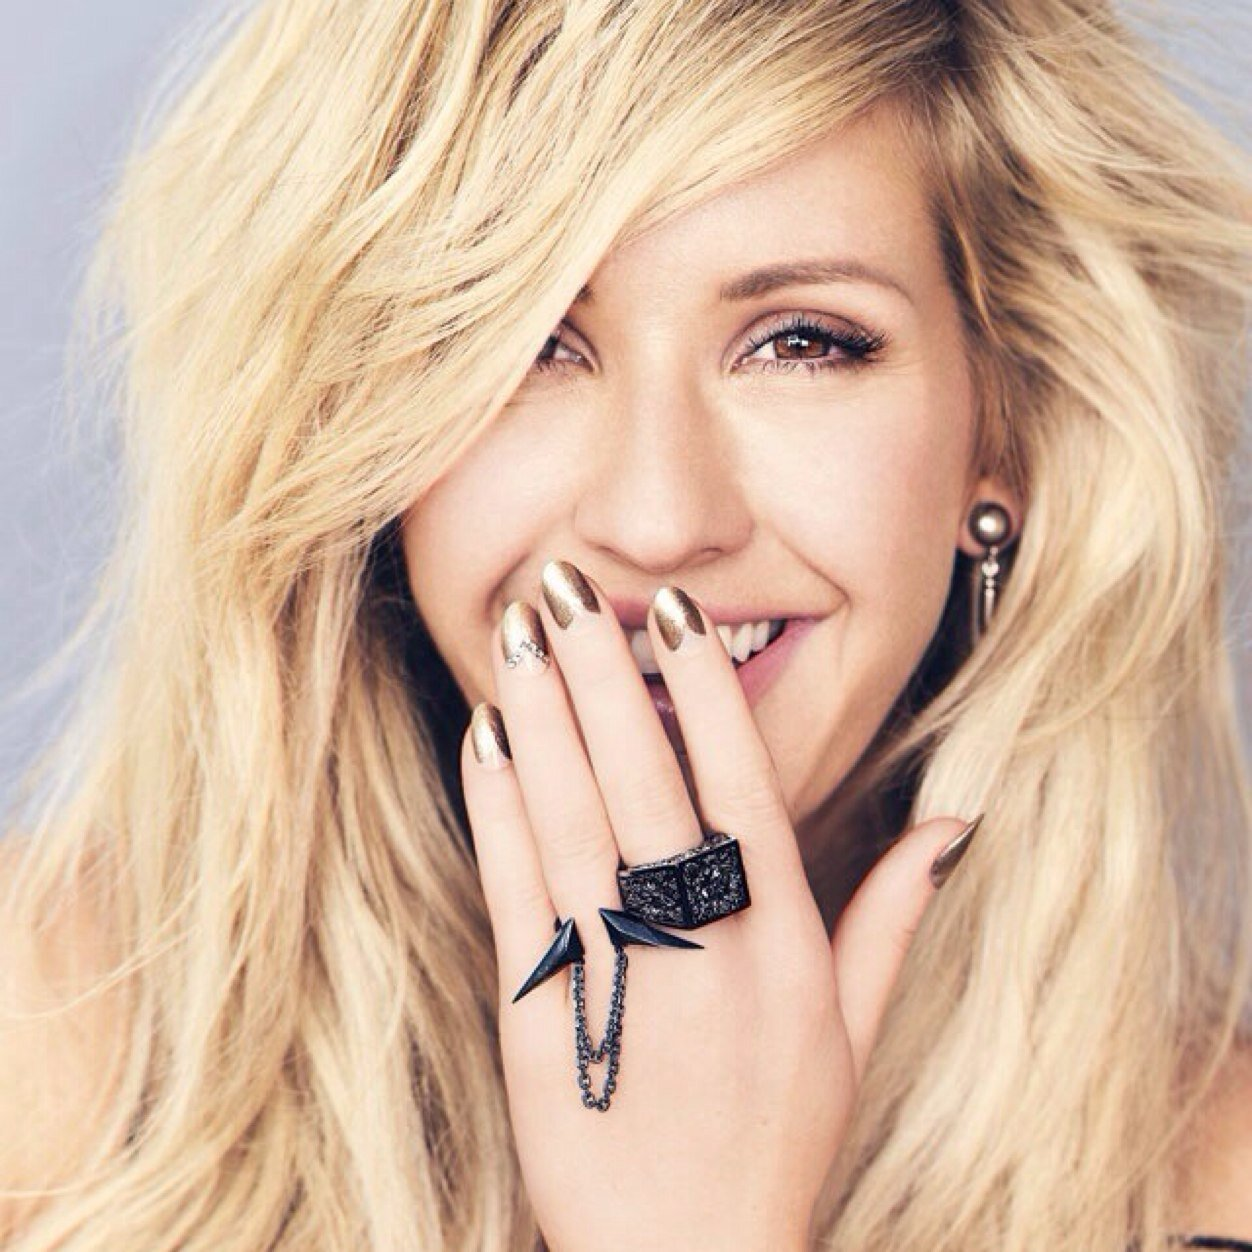 CORE Hydration Partners with Ellie Goulding